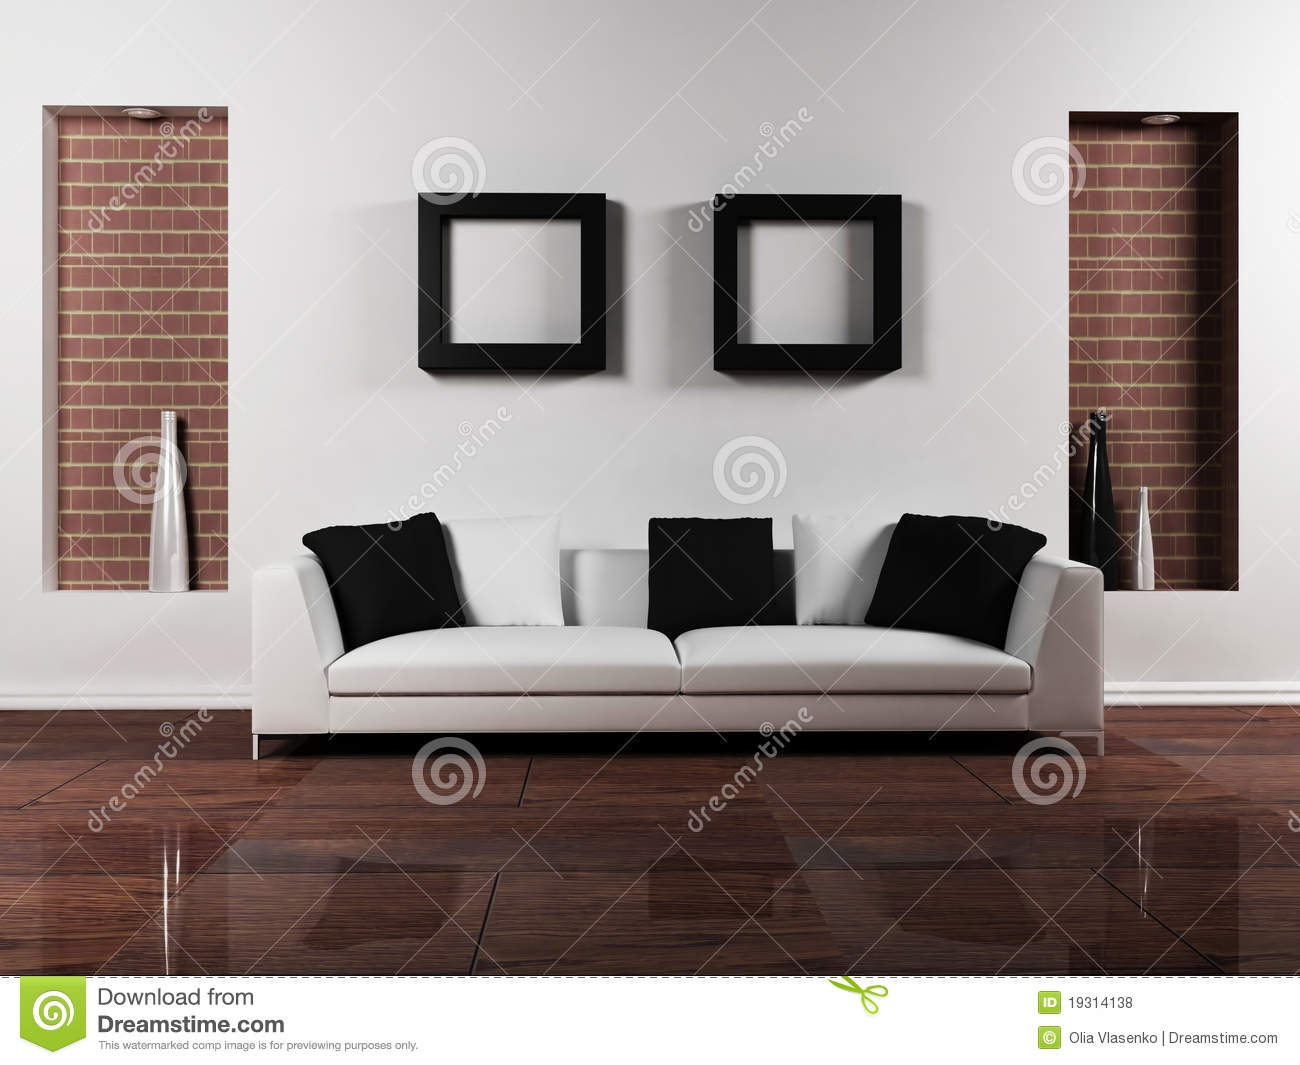 Modern interior design of living room stock illustration Living room interior design photo gallery